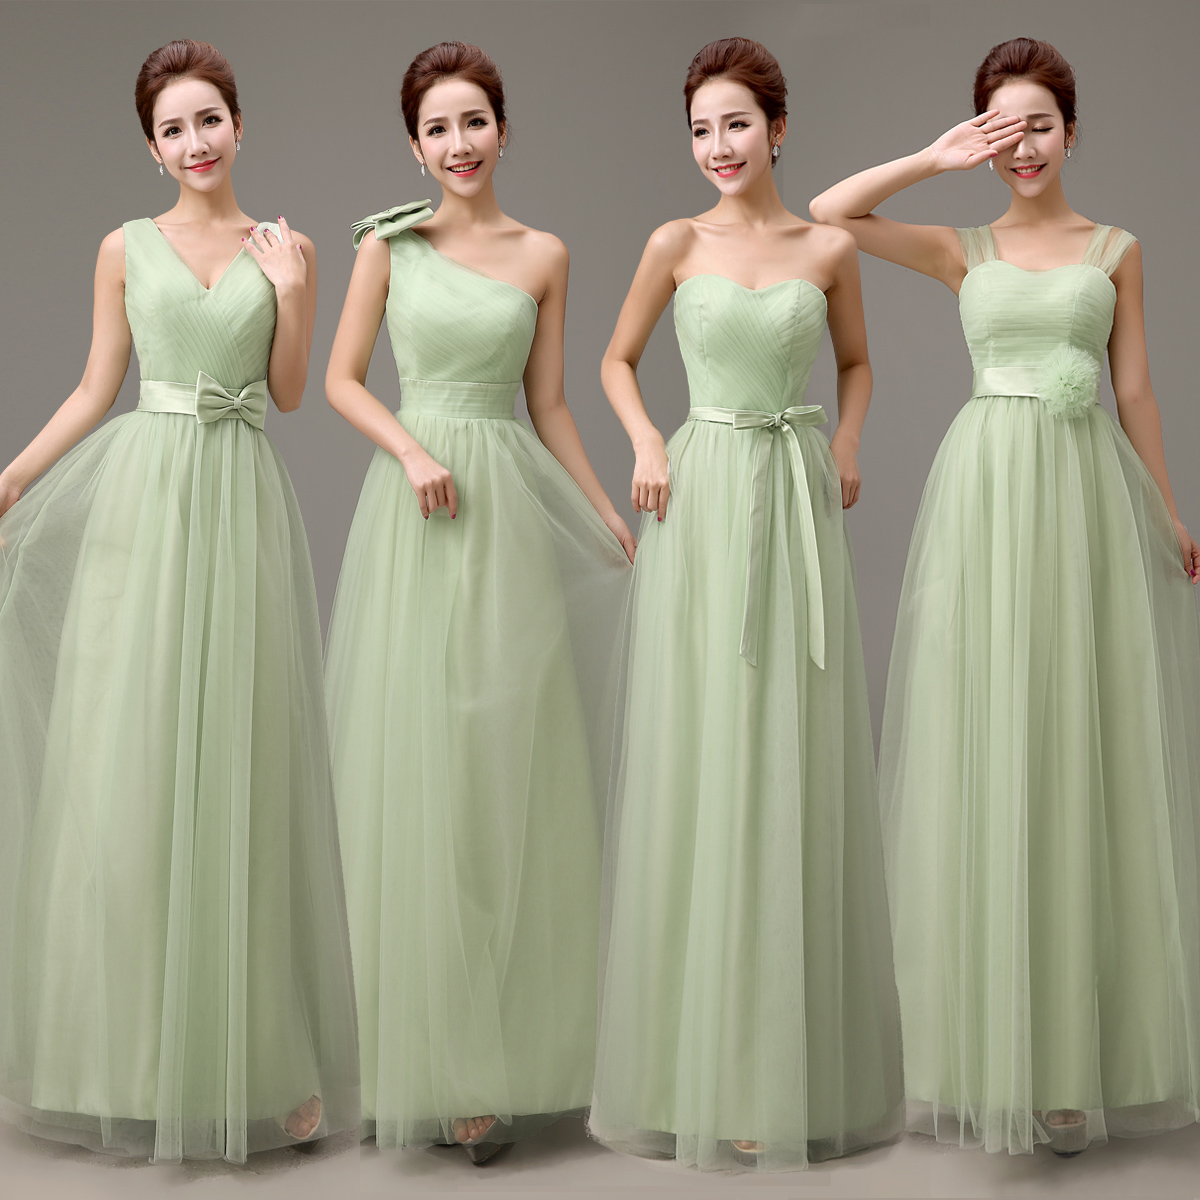 JC&STAR 2017 V neck Straps Tulle Long Mint Green Bridesmaid Dresses ...